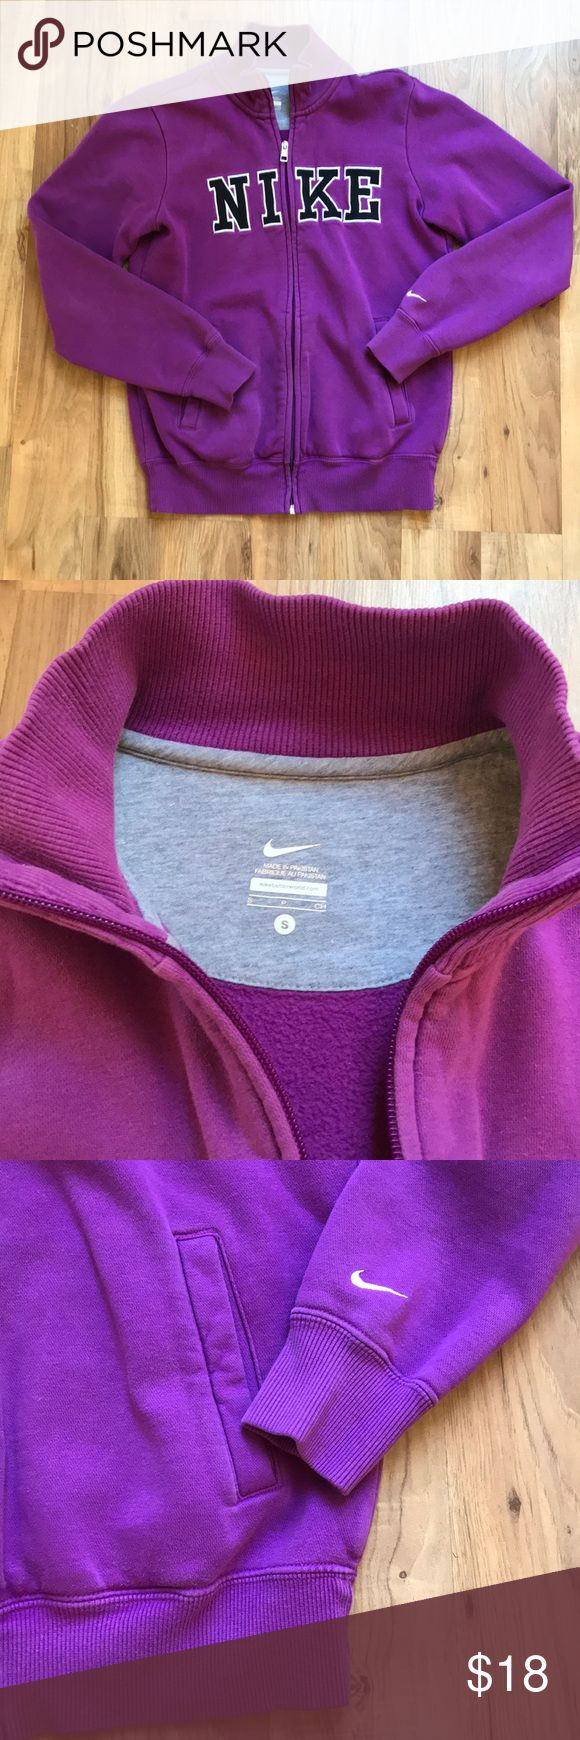 Nike Womens Purple Zip Up Sweatshirt Super soft purple Nike Zip Up front with pockets. Embroidered Nike logo at chest. Some general fading but no stains or tears. Comfy for 🏋️♀️ working out! 💪 Nike Tops Sweatshirts & Hoodies